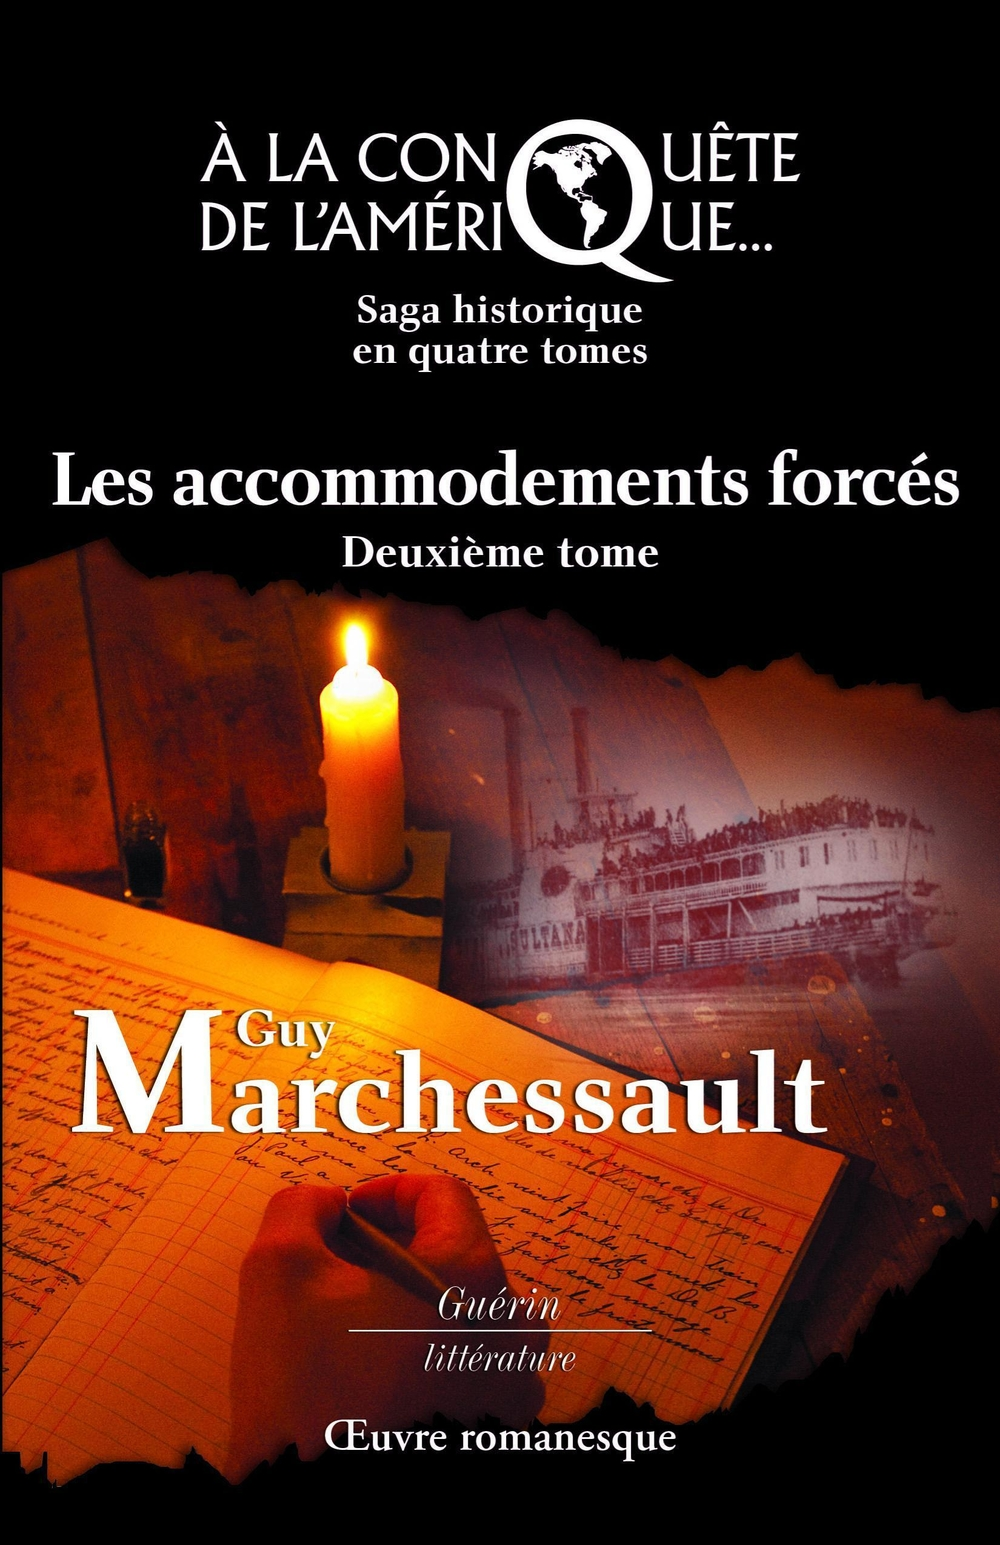 Les accomodements forcés